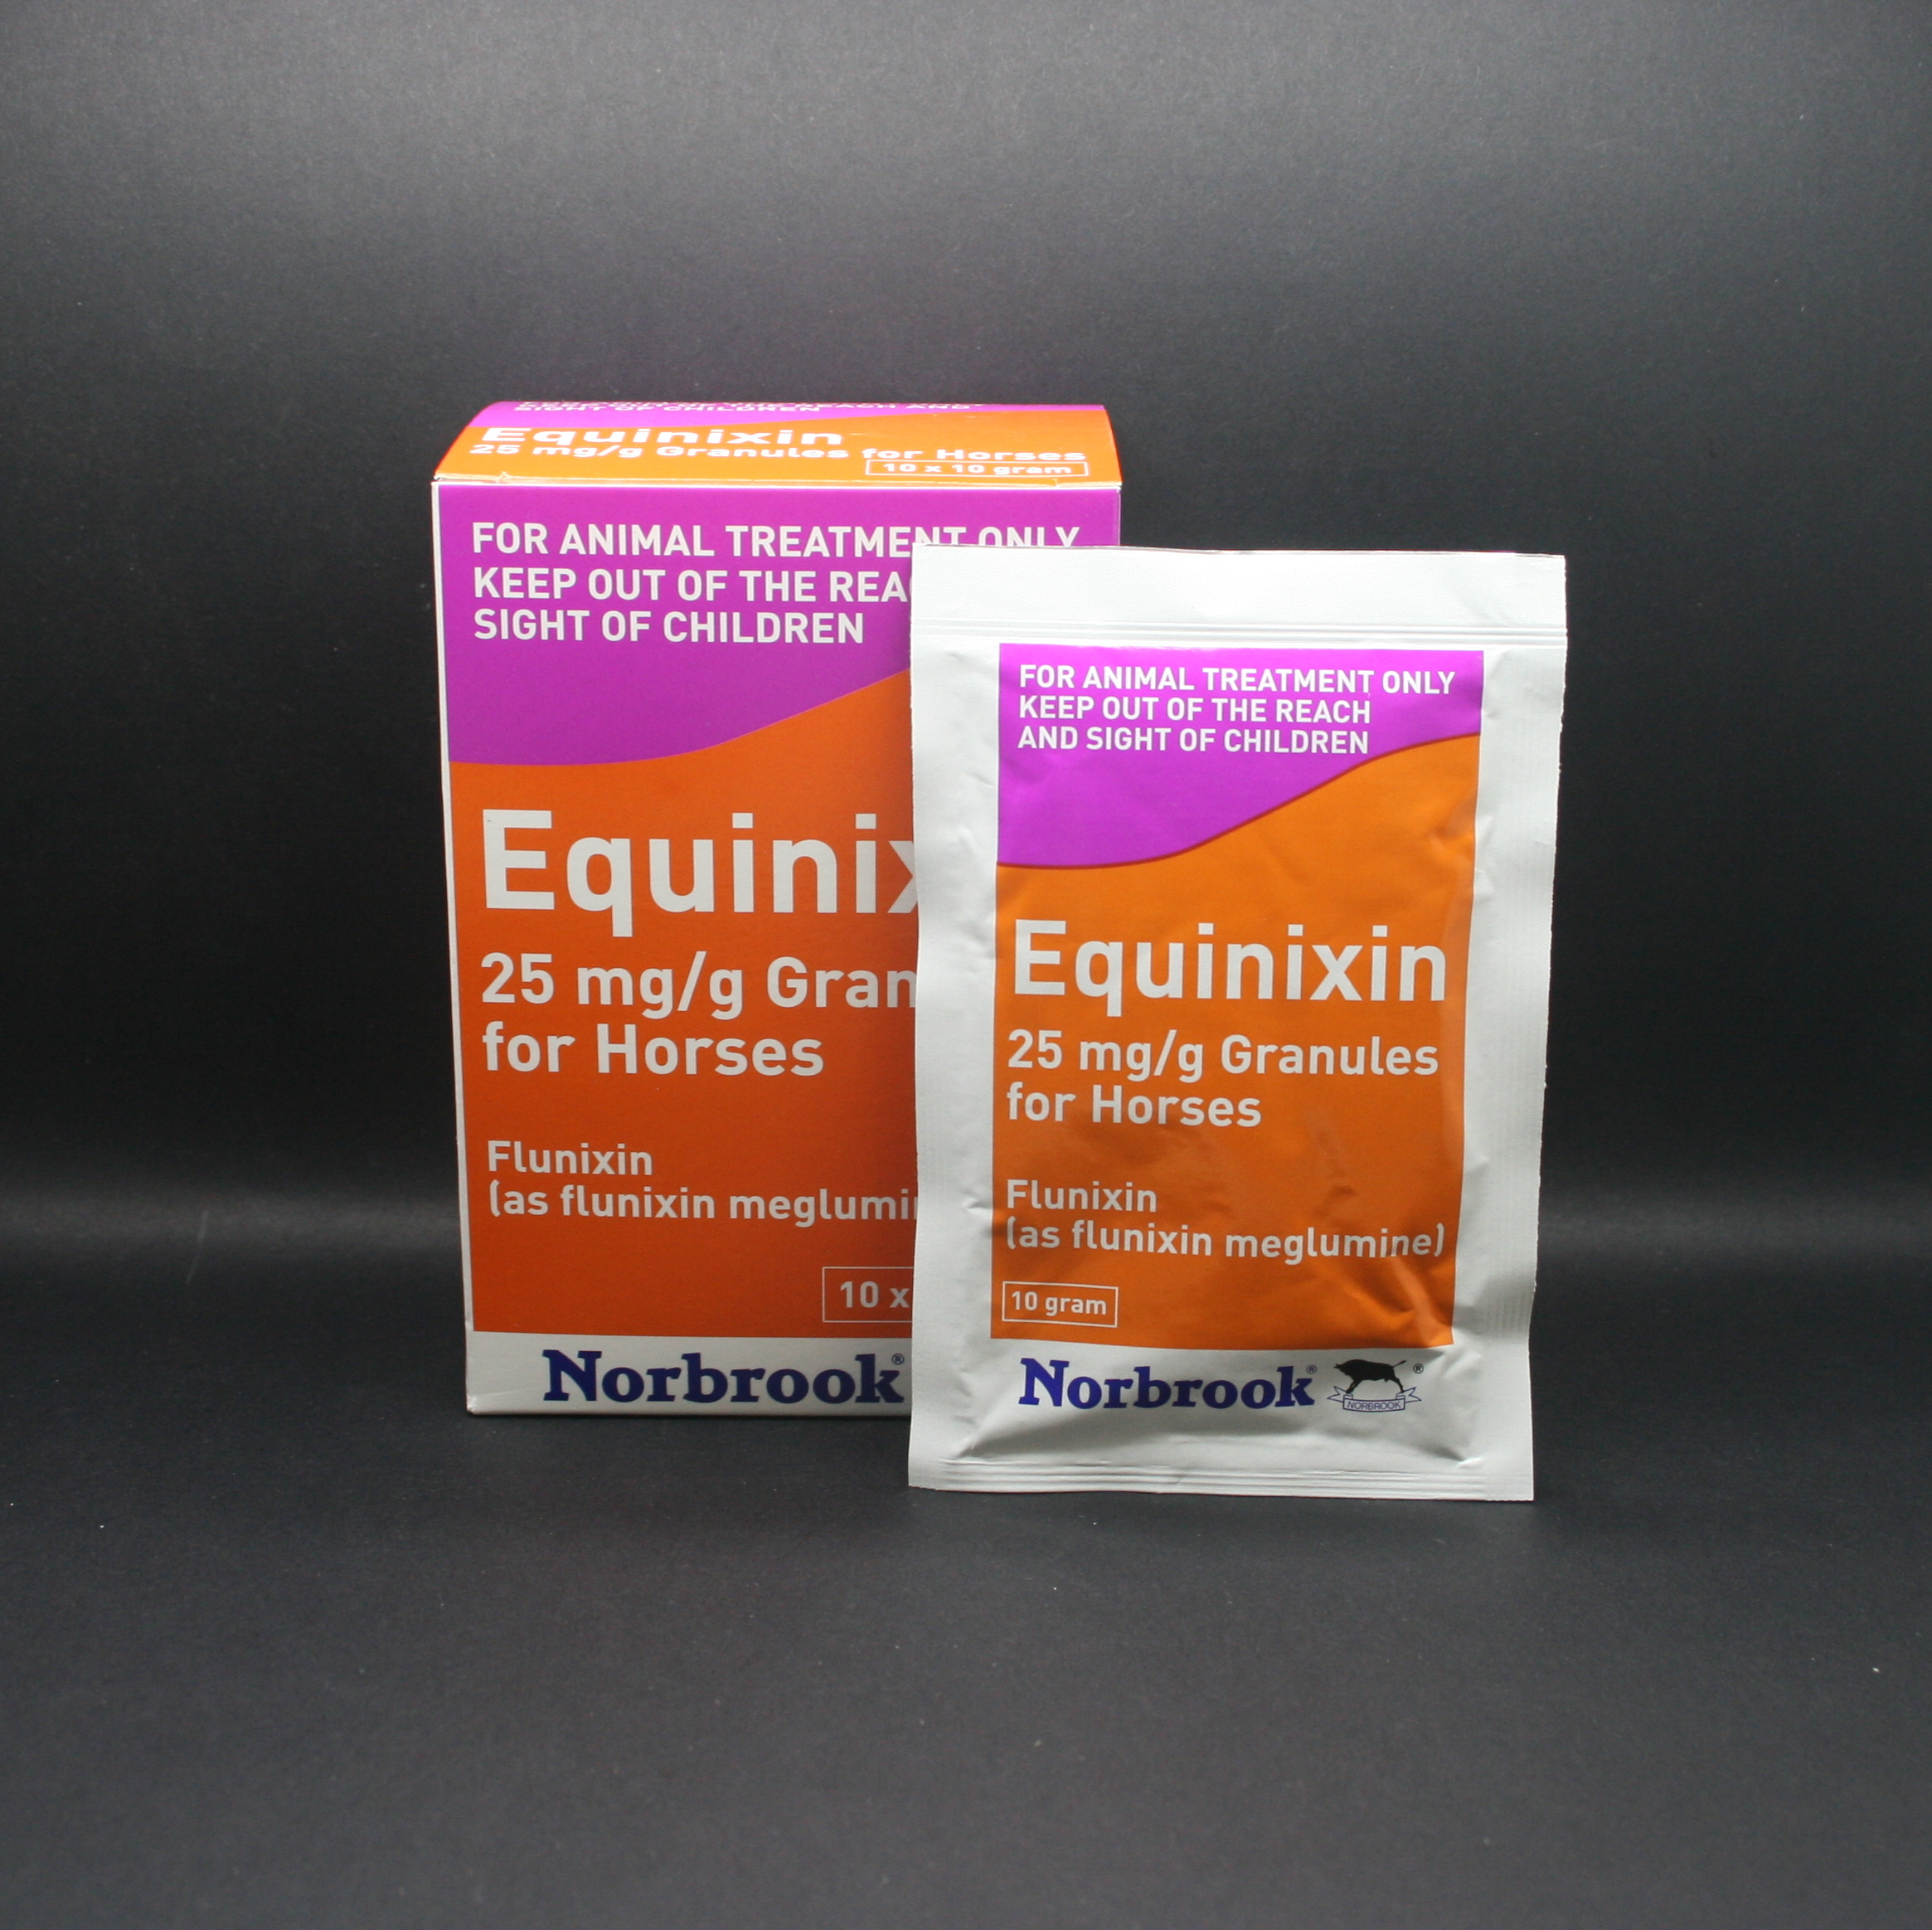 Equinixin 2.5% w/w Granules for Horses (10x250mg sachets)